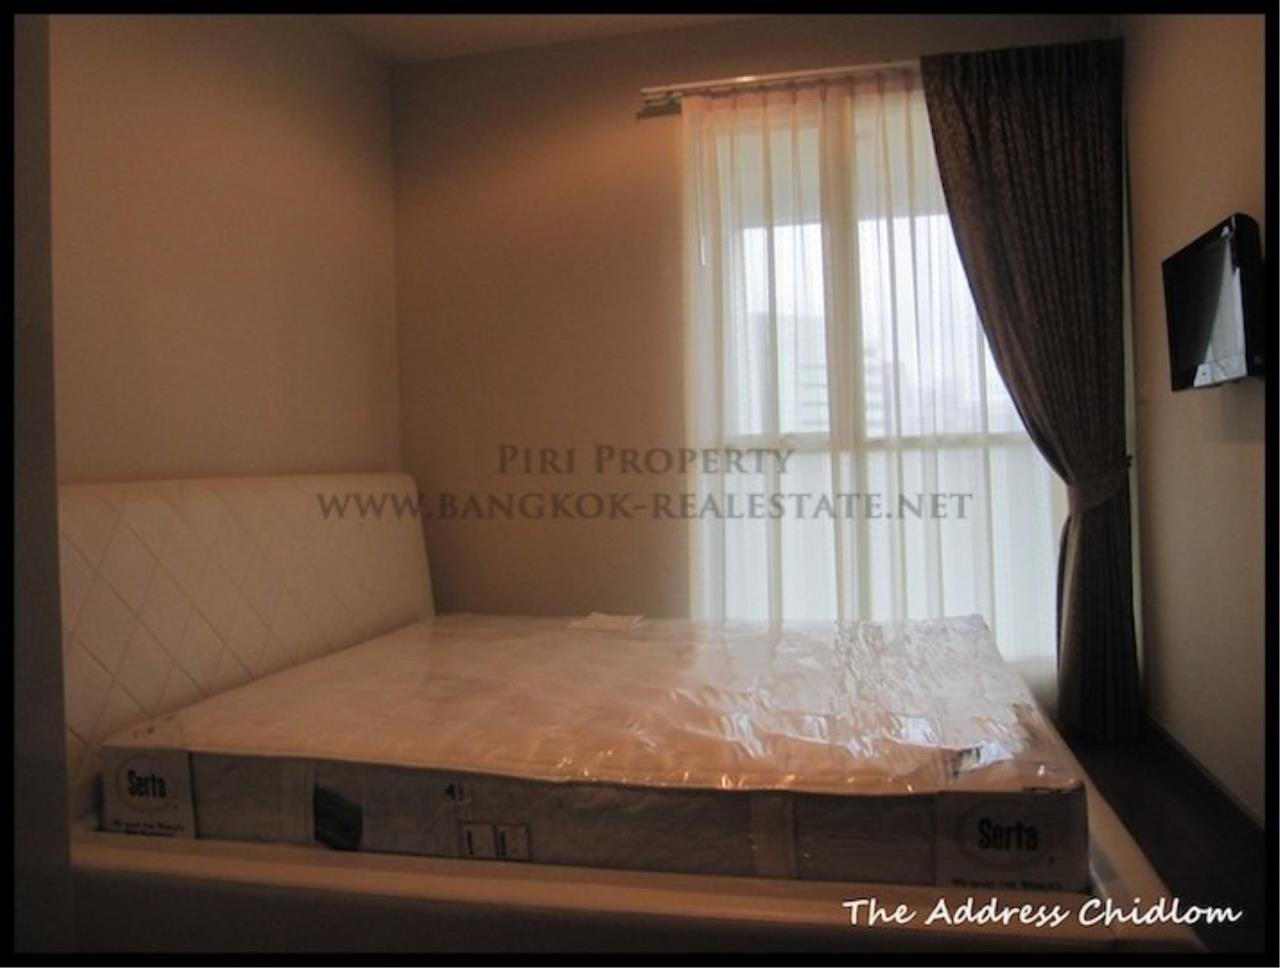 Piri Property Agency's Biggest available 2 Bedroom in The Address Chidlom - Fully furnished 4